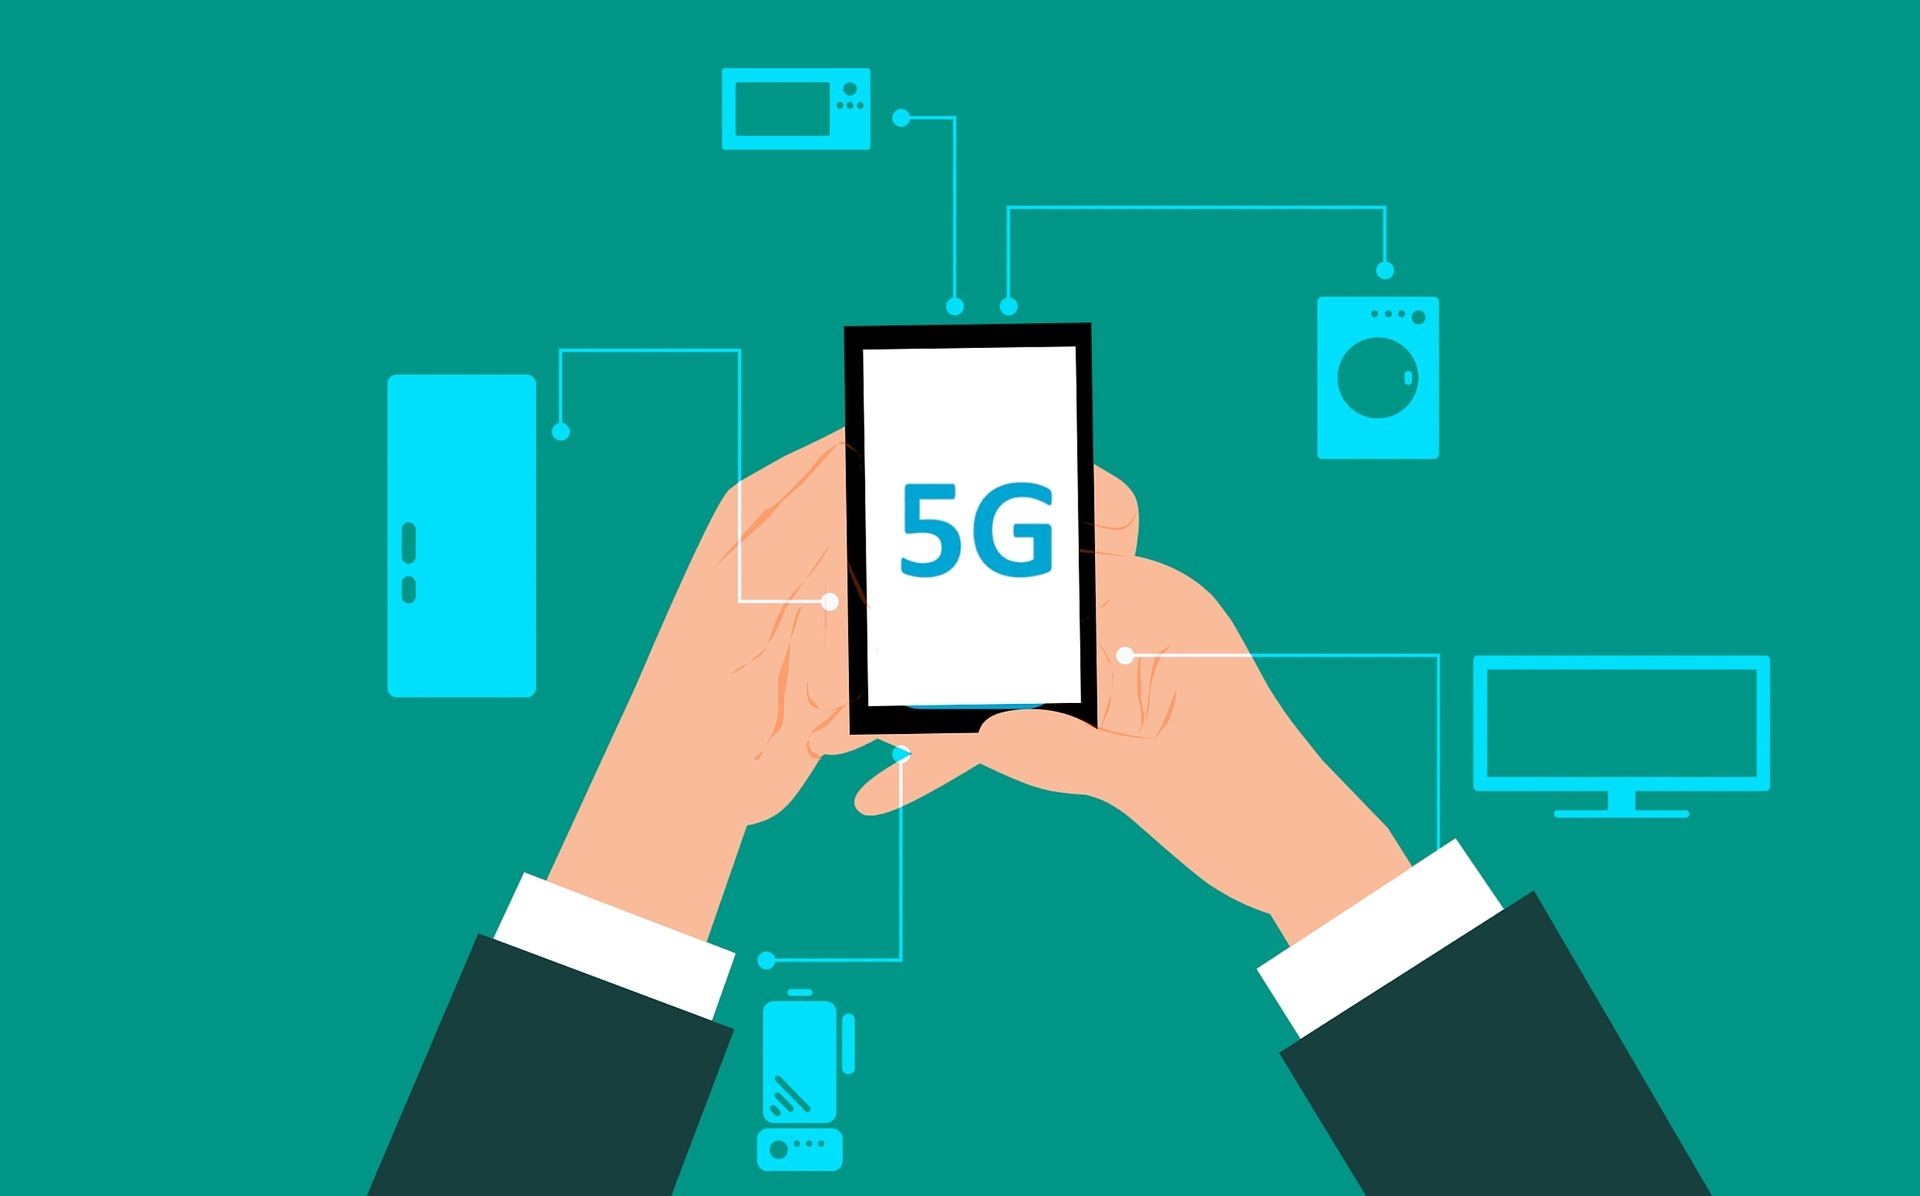 BMVI Initiative Seeks Concepts for Pioneer 5G Projects in Germany